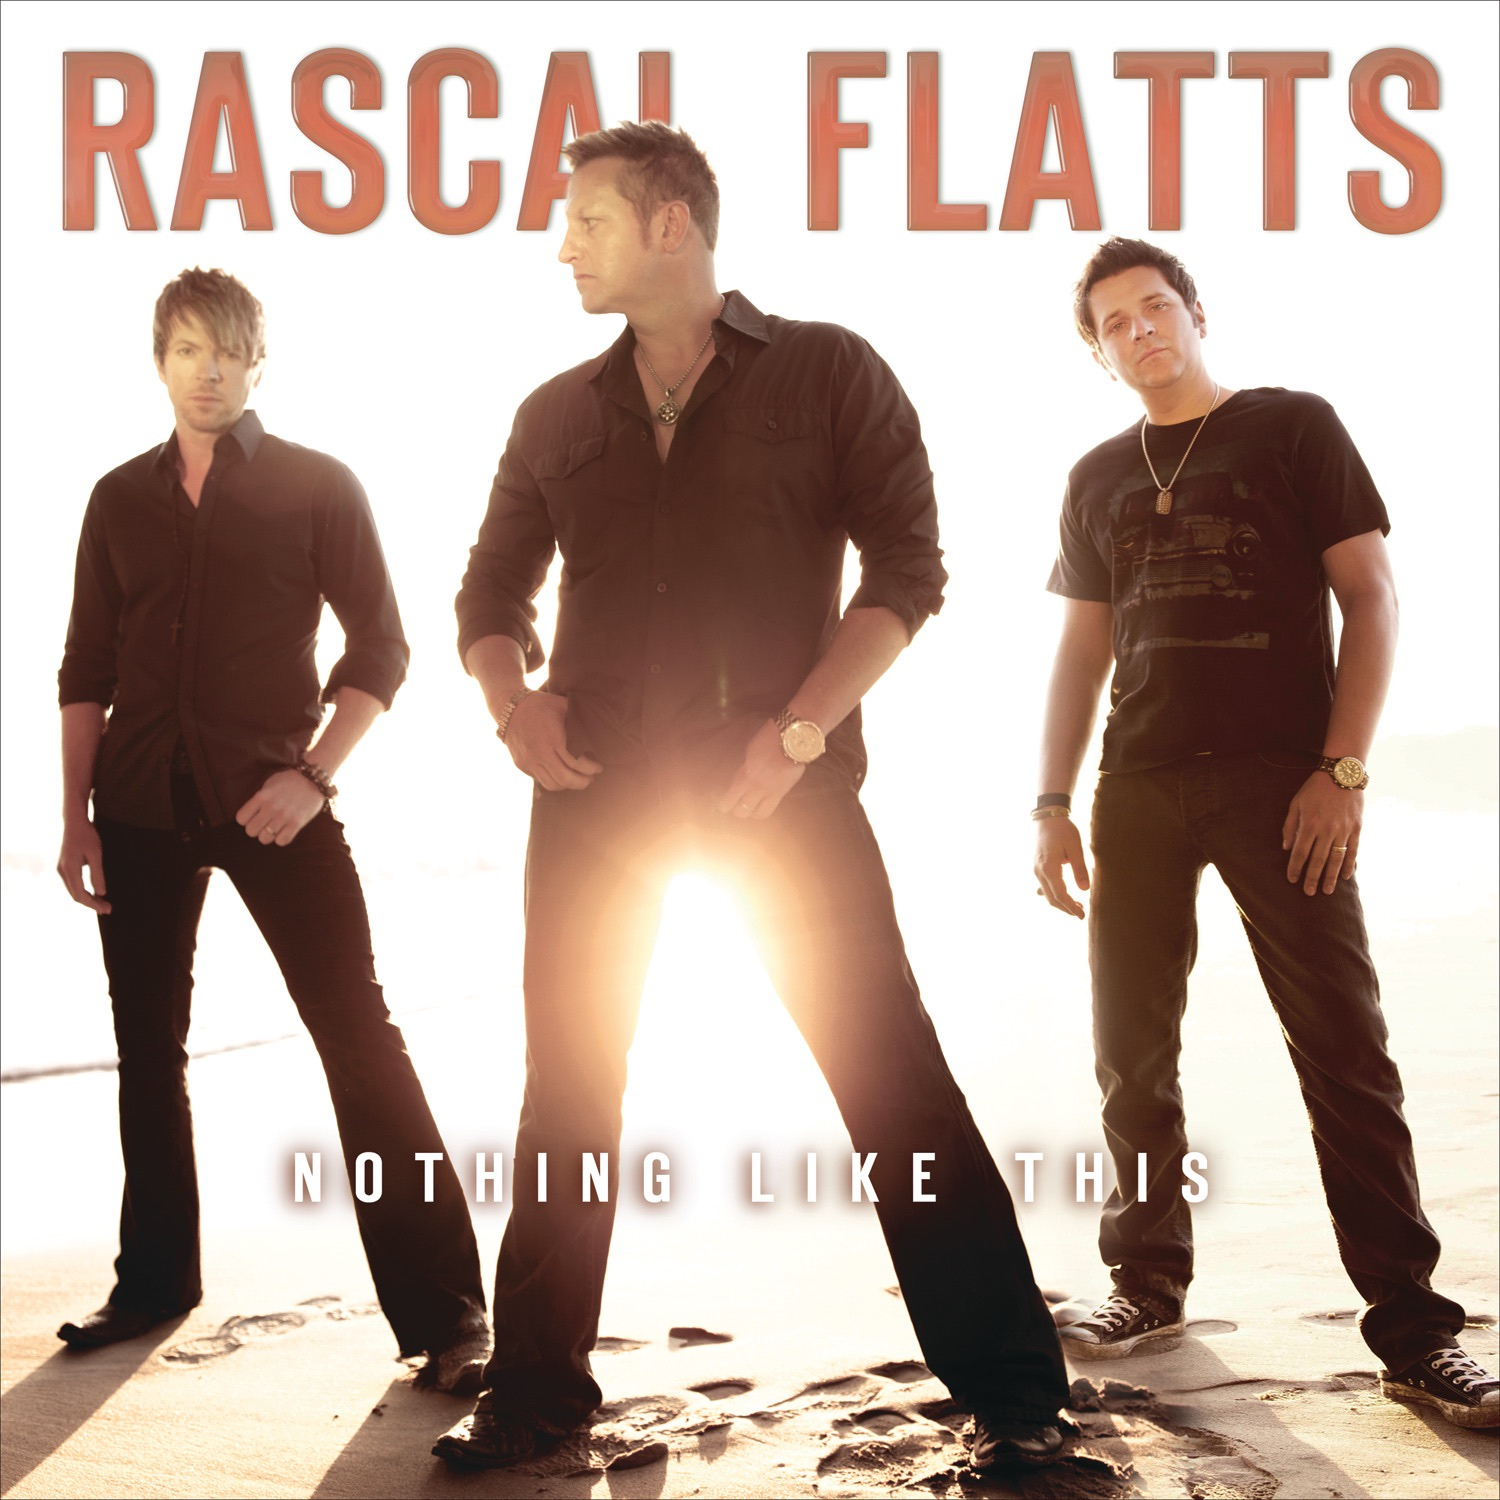 Rascal Flatts album Nothing Like This